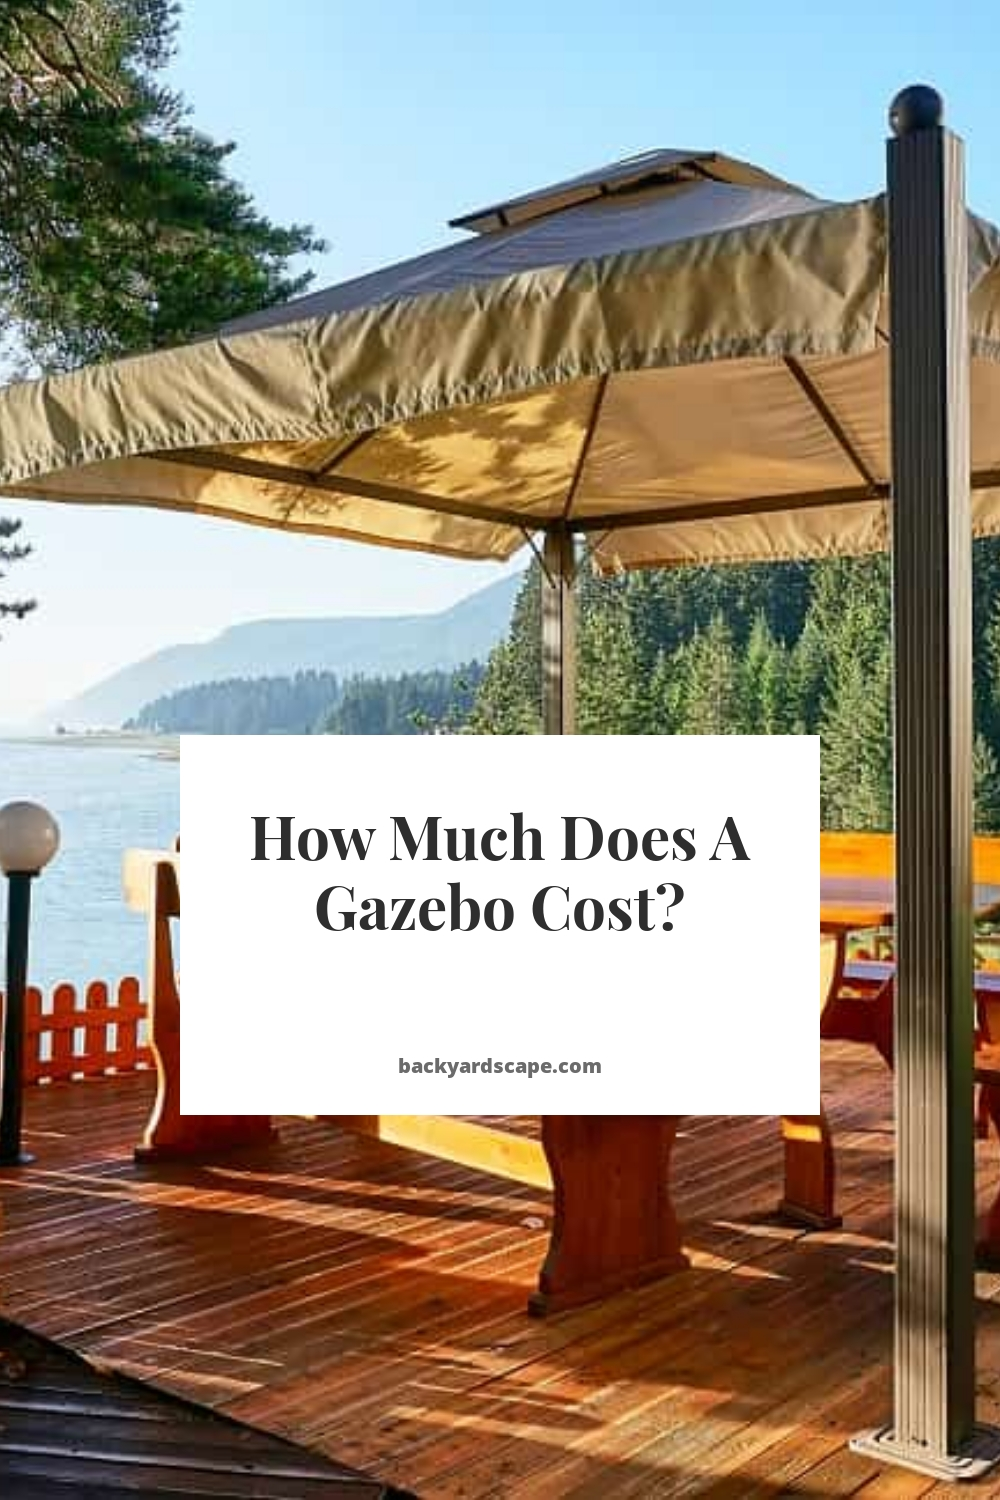 How Much Does A Gazebo Cost?